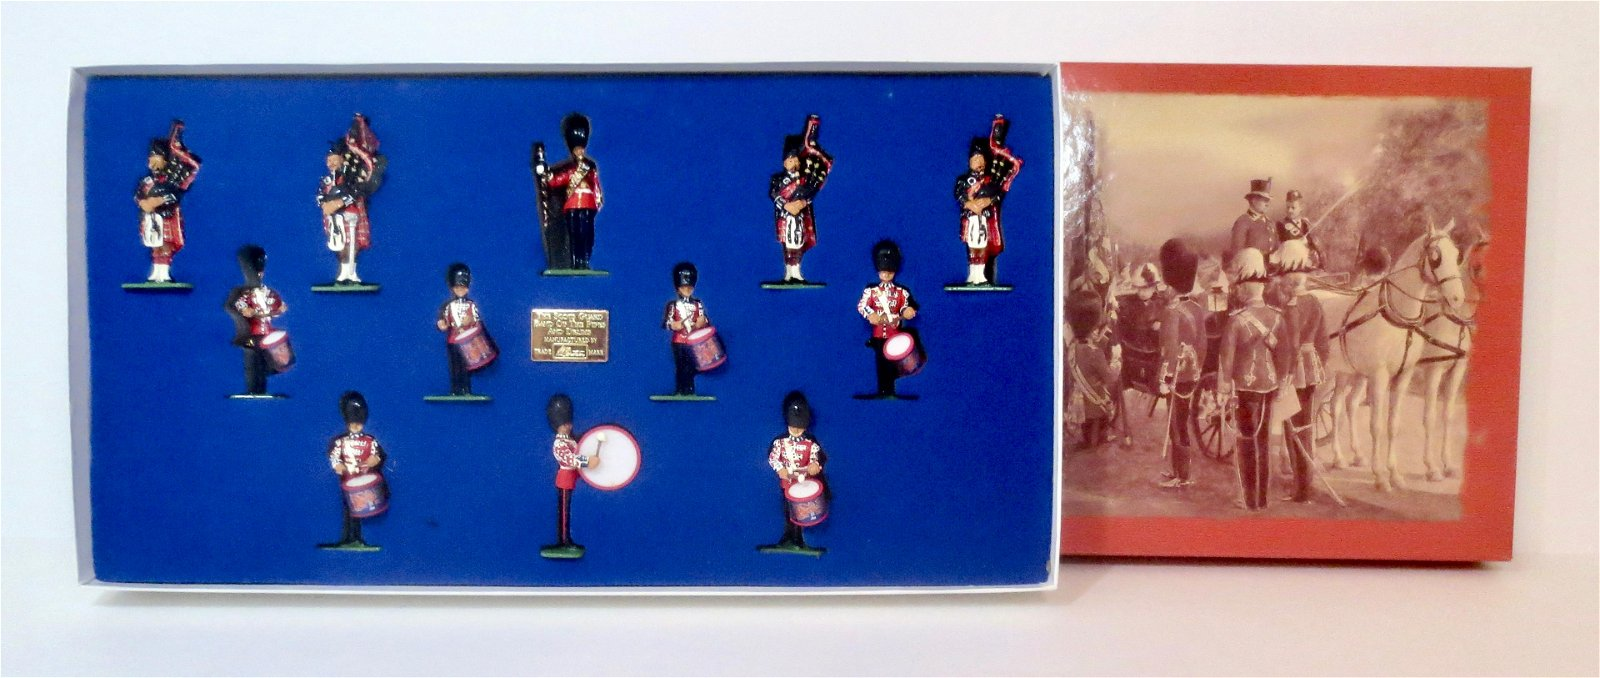 Britains #00214 Scots Guards Pipes & Drums Band